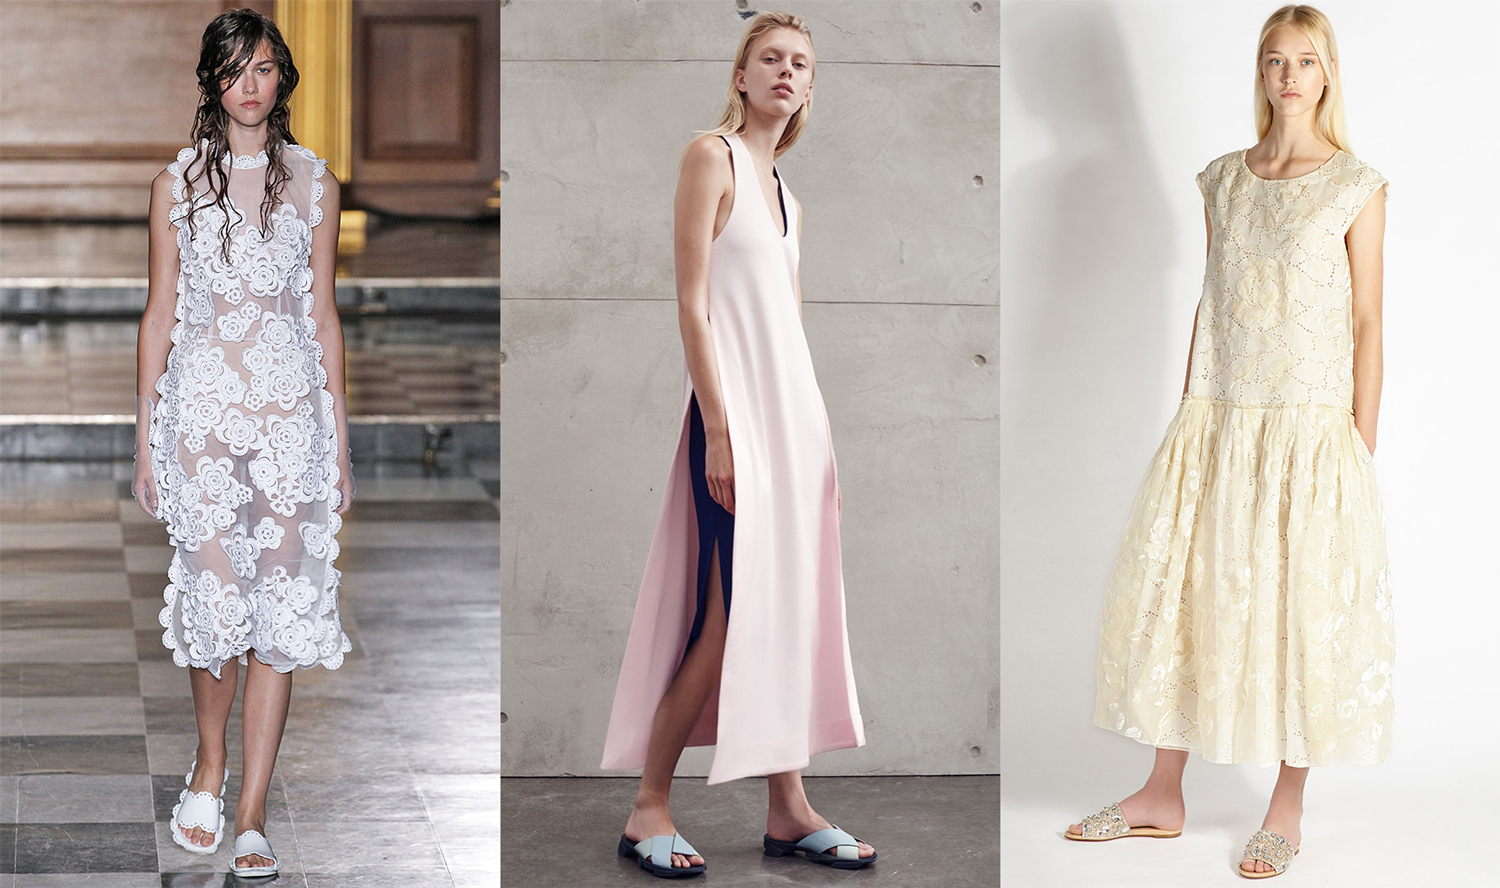 "<p>Ever since Rochas reintroduced the humble slide with crunchy jewels for Resort 2015, its been a firm fixture in the fashion zeitgeist. Now that spring's a hot second away (and your feet are <a href=""http://honey.ninemsn.com.au/2015/08/18/09/03/foot-work"" target=""_blank"">suitably prepped</a>), it's time to shop the chic-yet-relaxed shoe style.</p>"